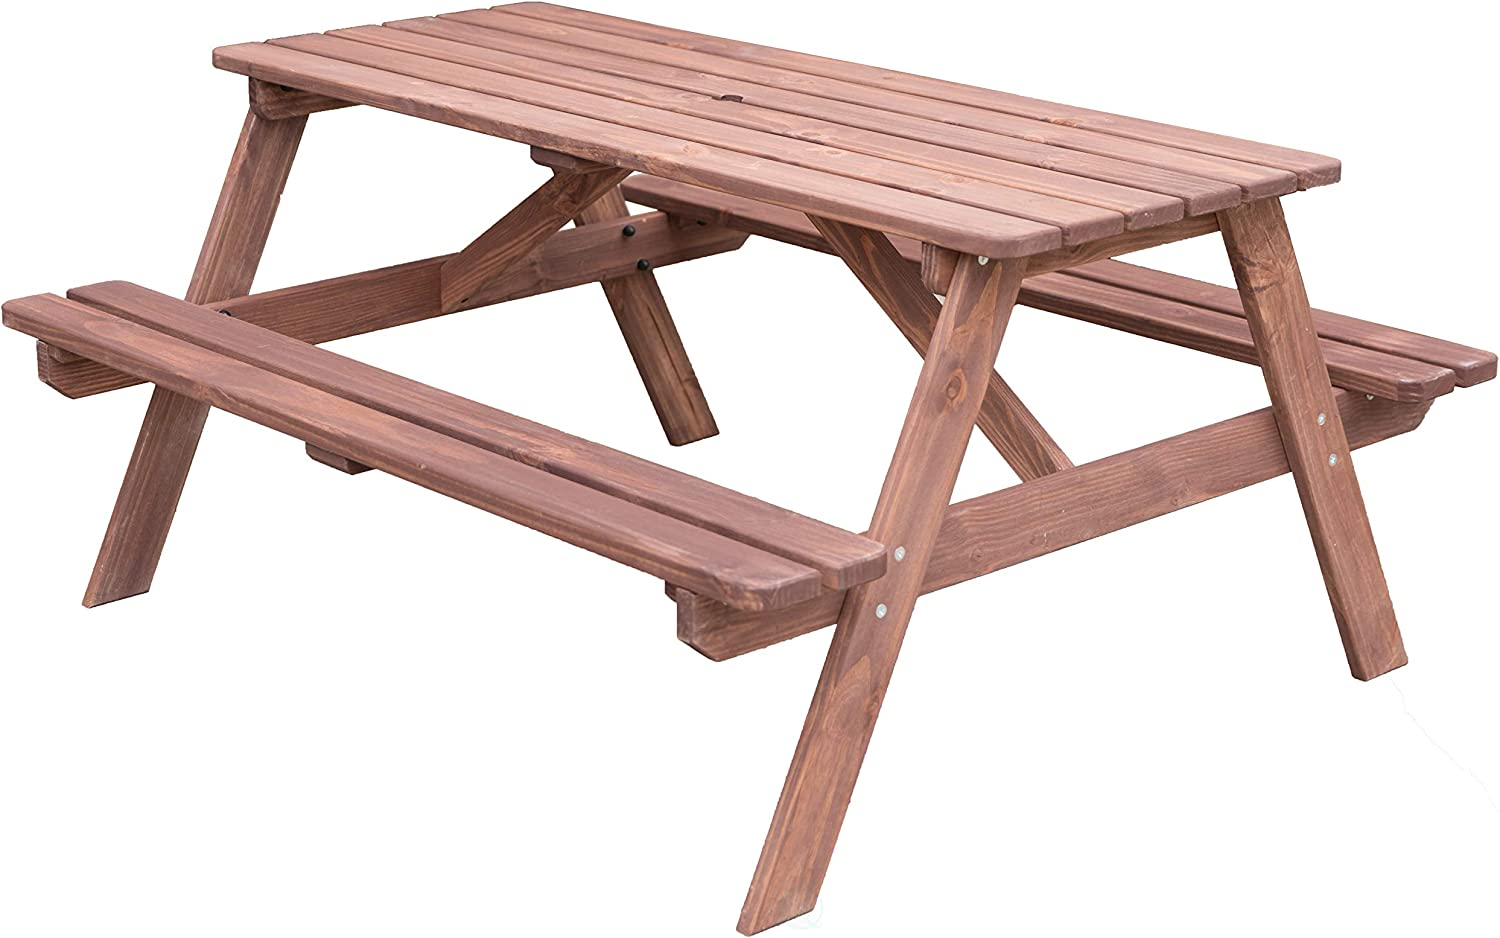 Gardenised QI003469L.N A-Frame Outdoor Wooden Patio Deck Garden Picnic Table Natural